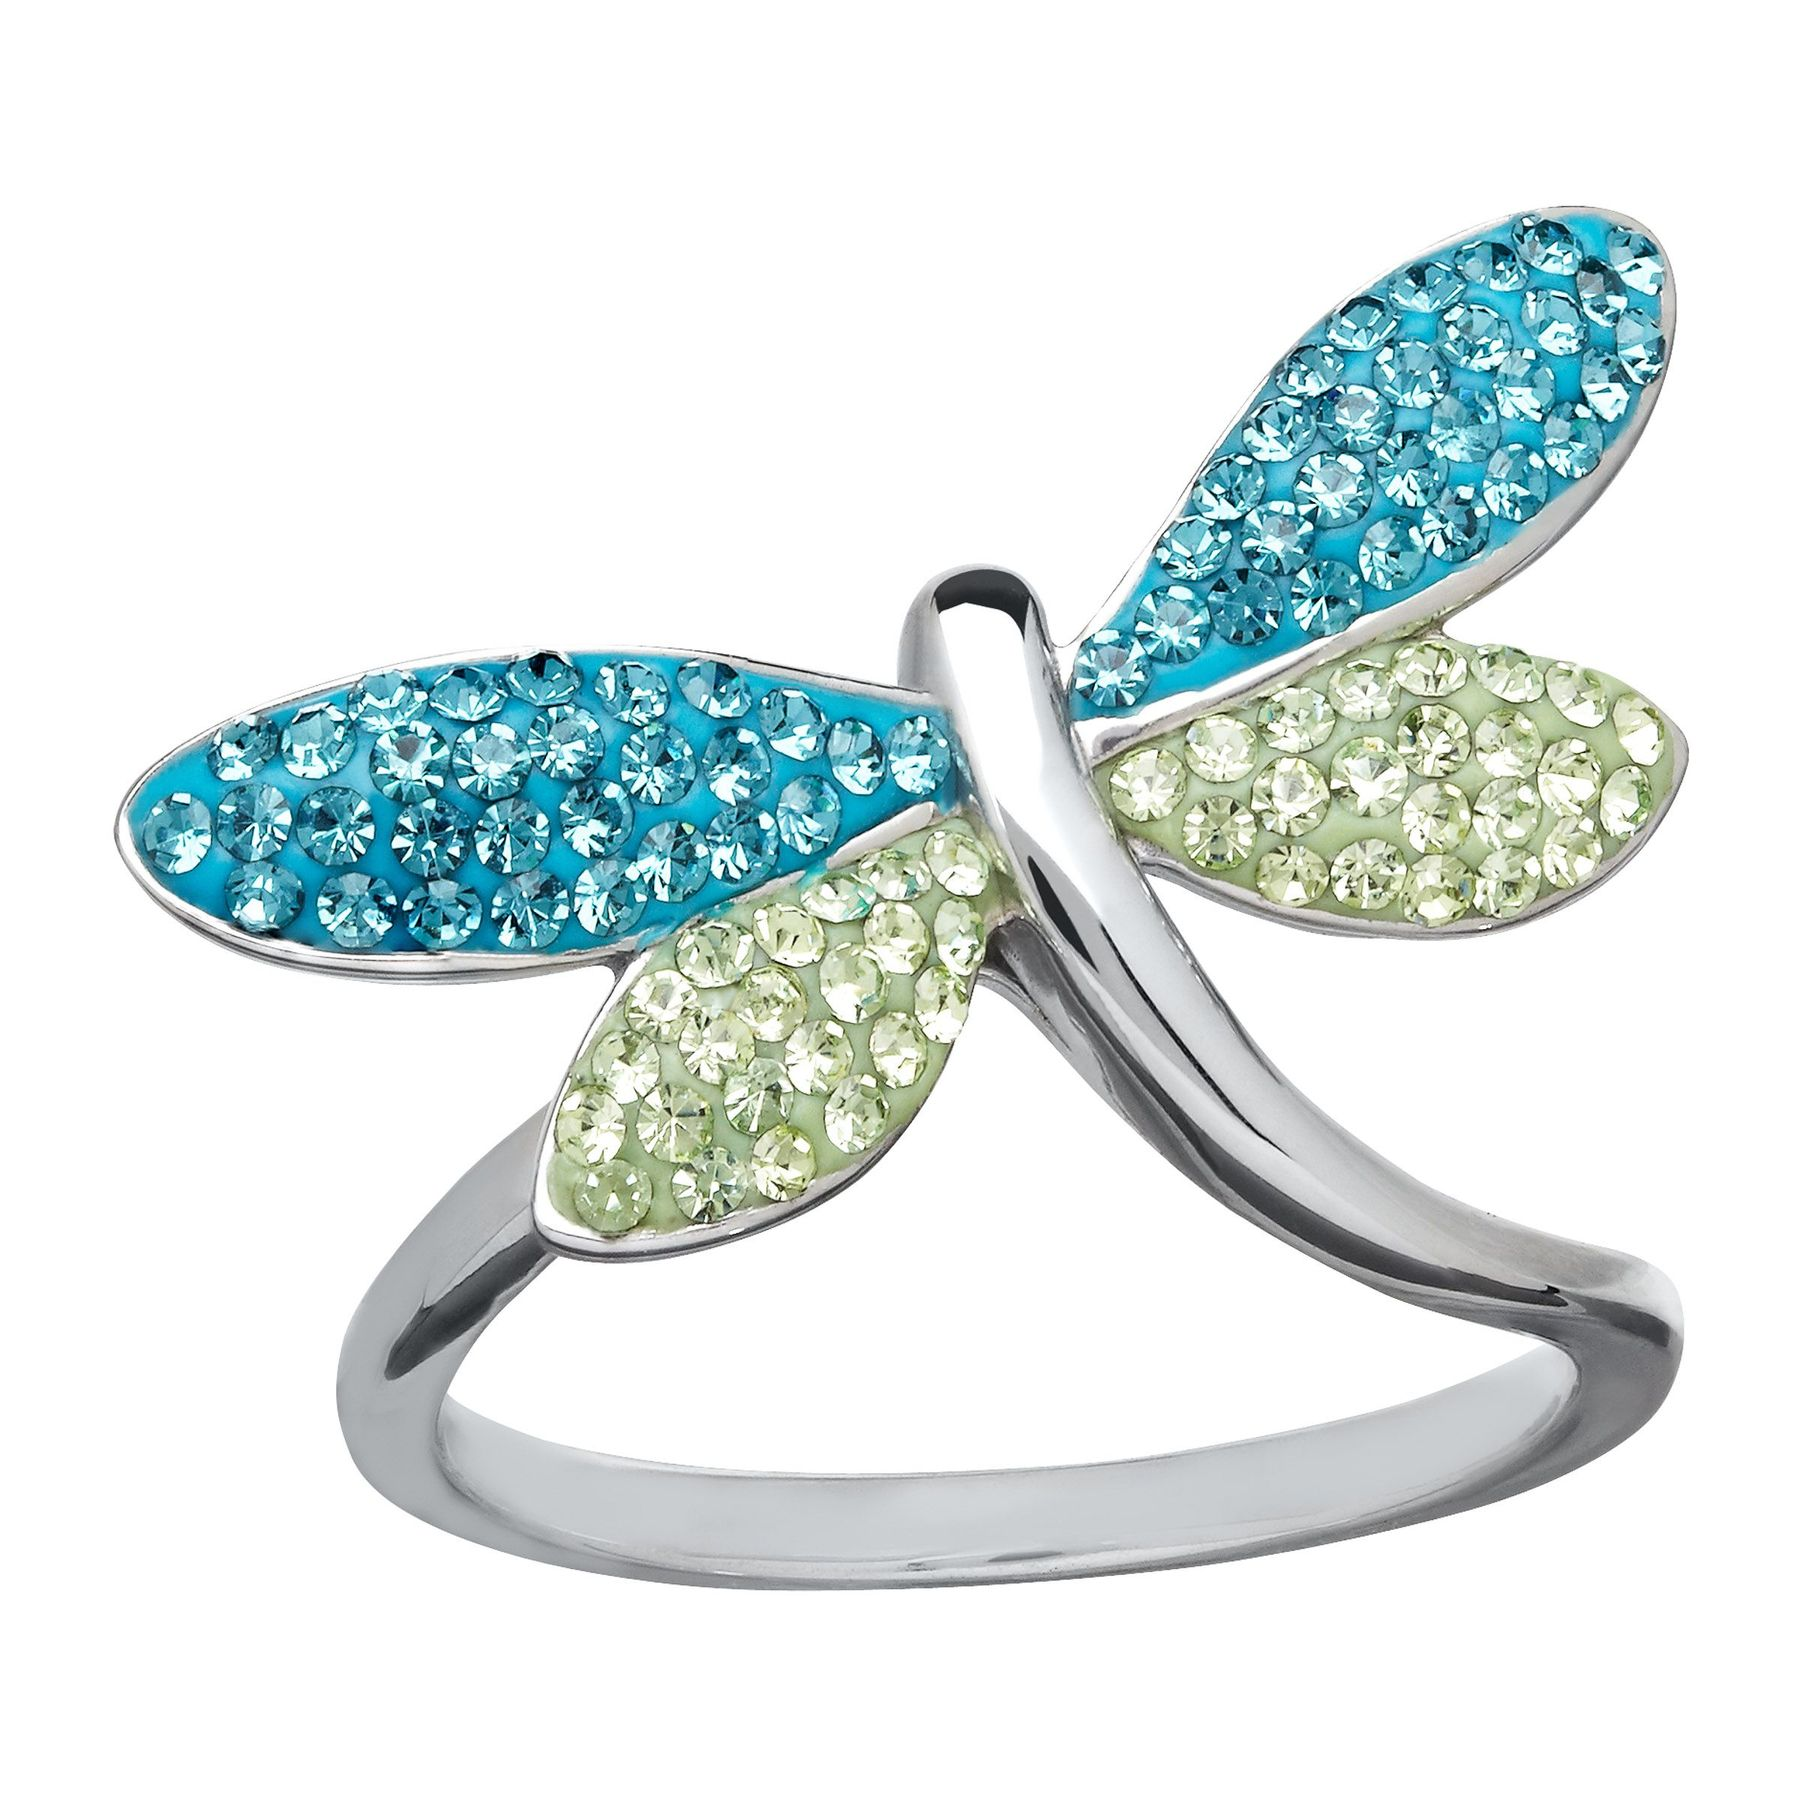 jewellery sterling silver rings cz ring product engagement cheshire blue dragonfly